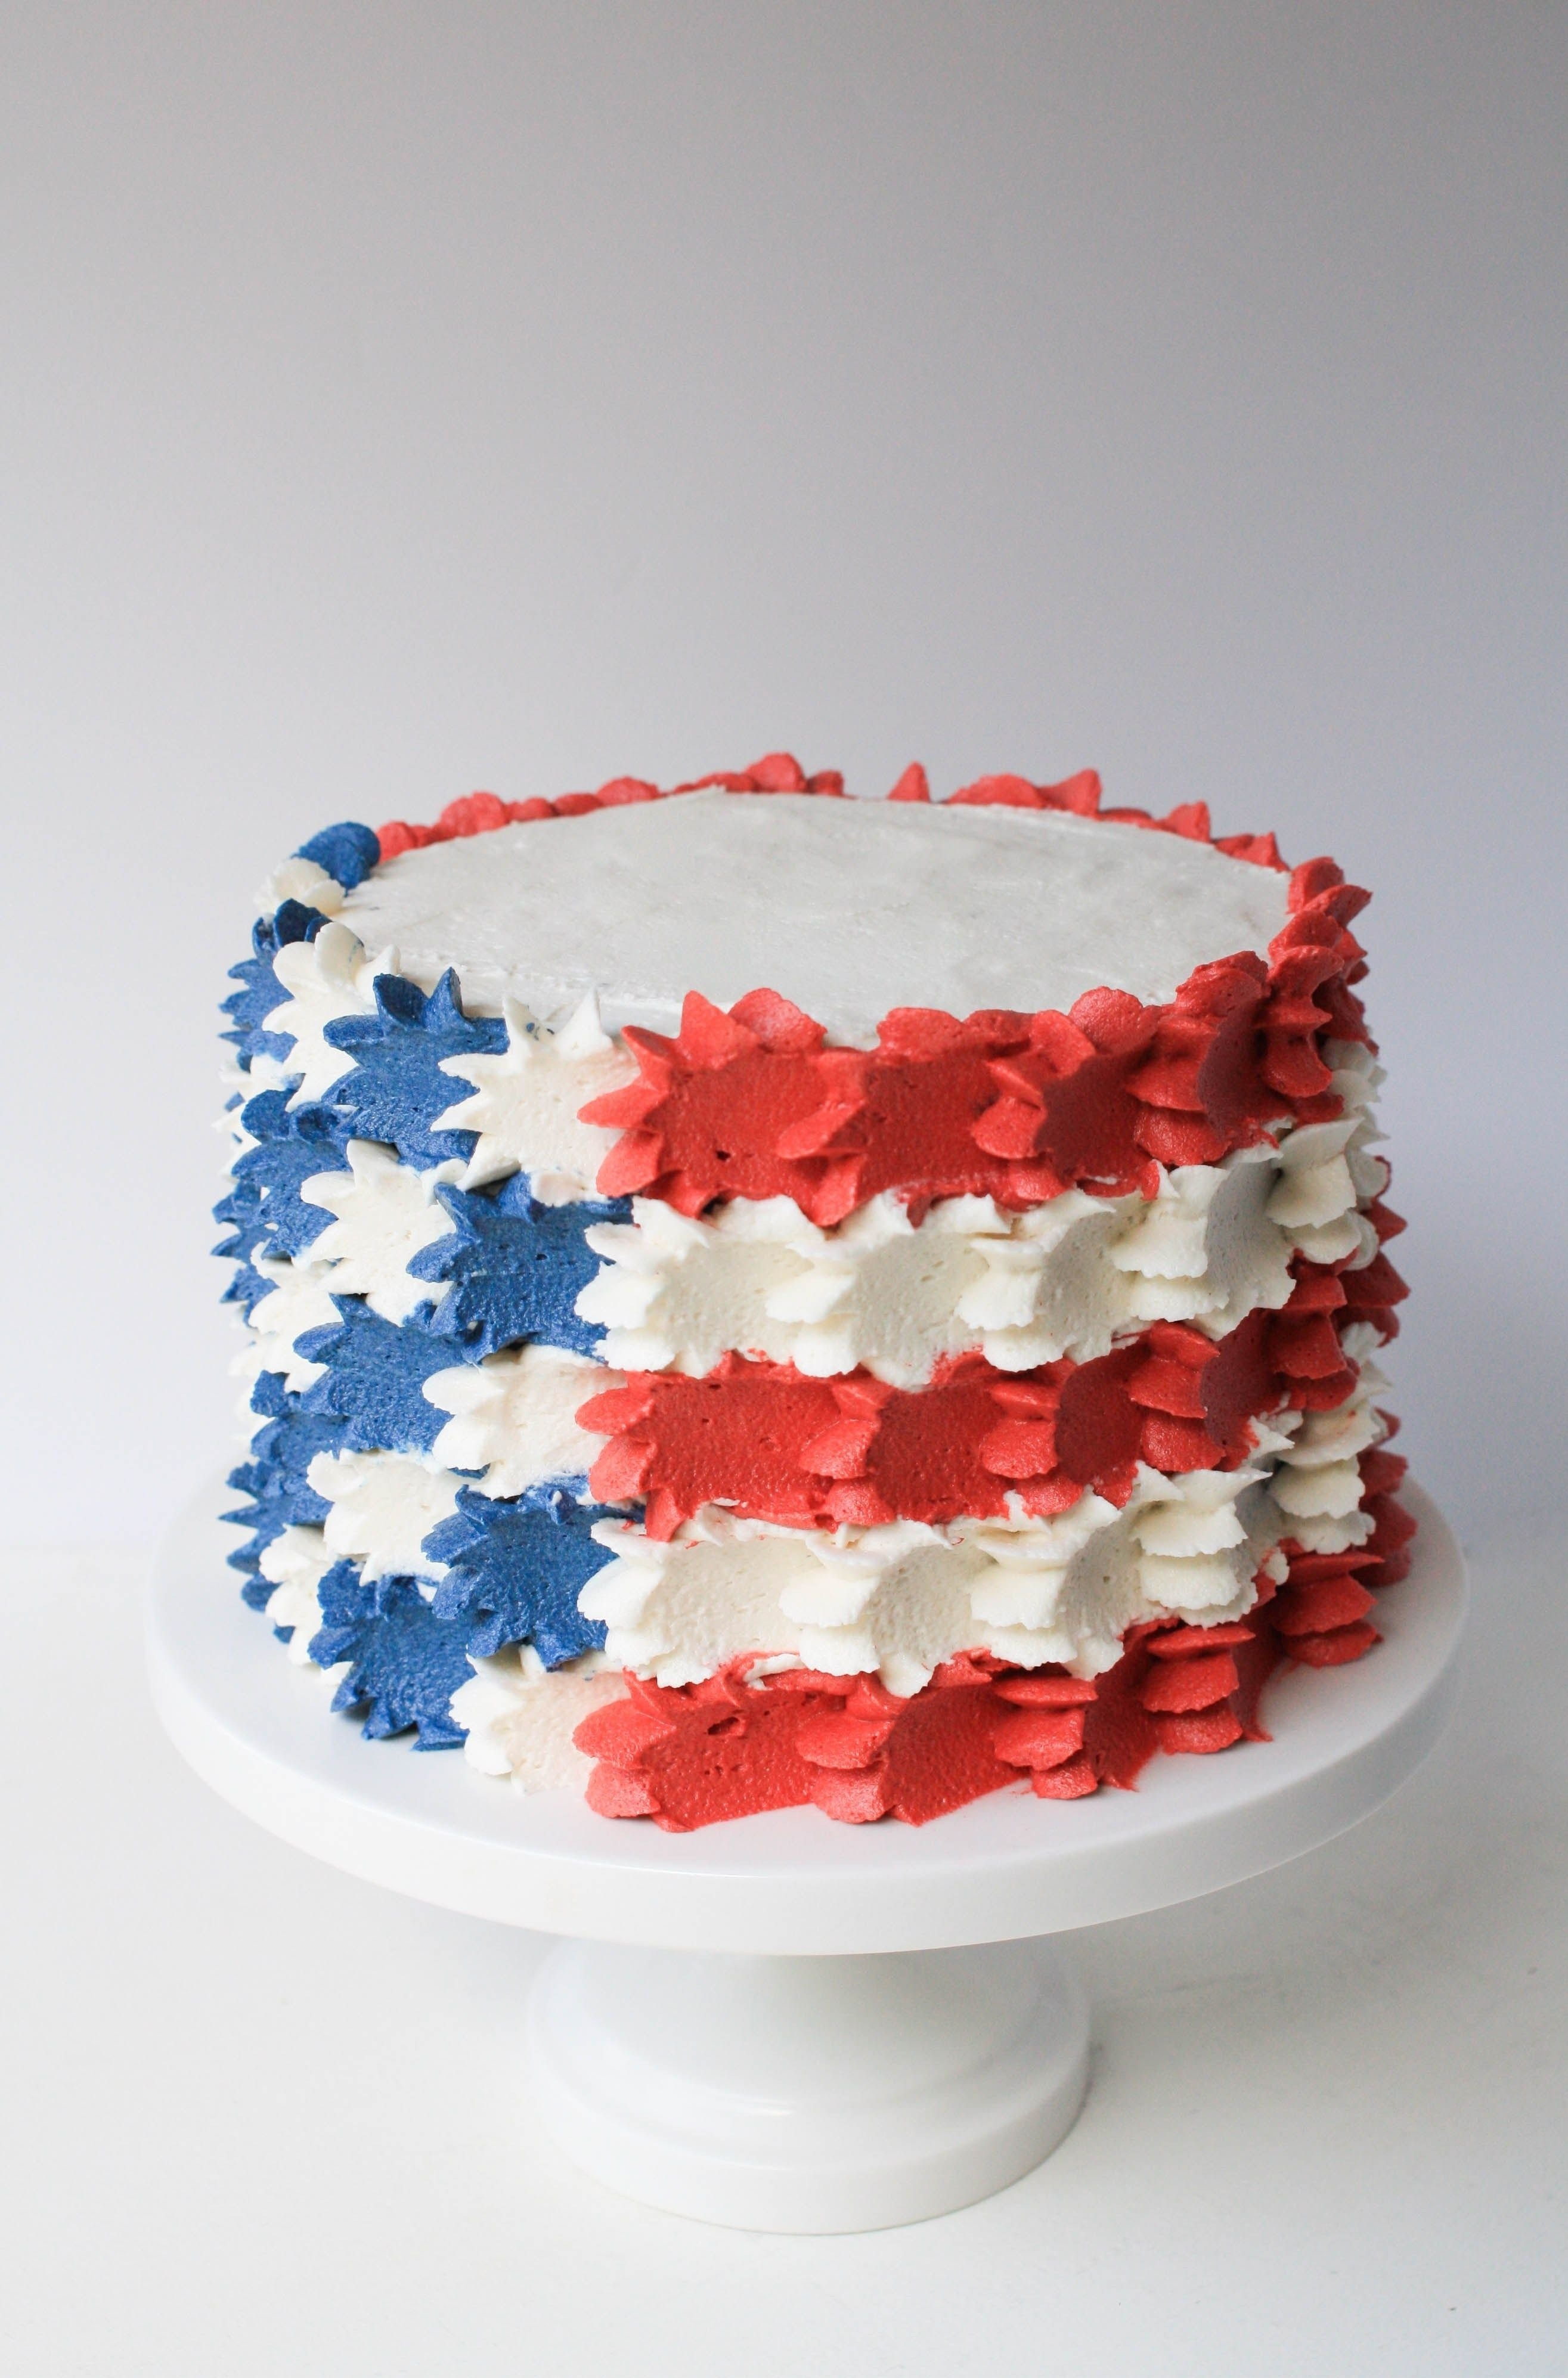 stars and stripes buttercream 4th of july cake |erin bakes | cake